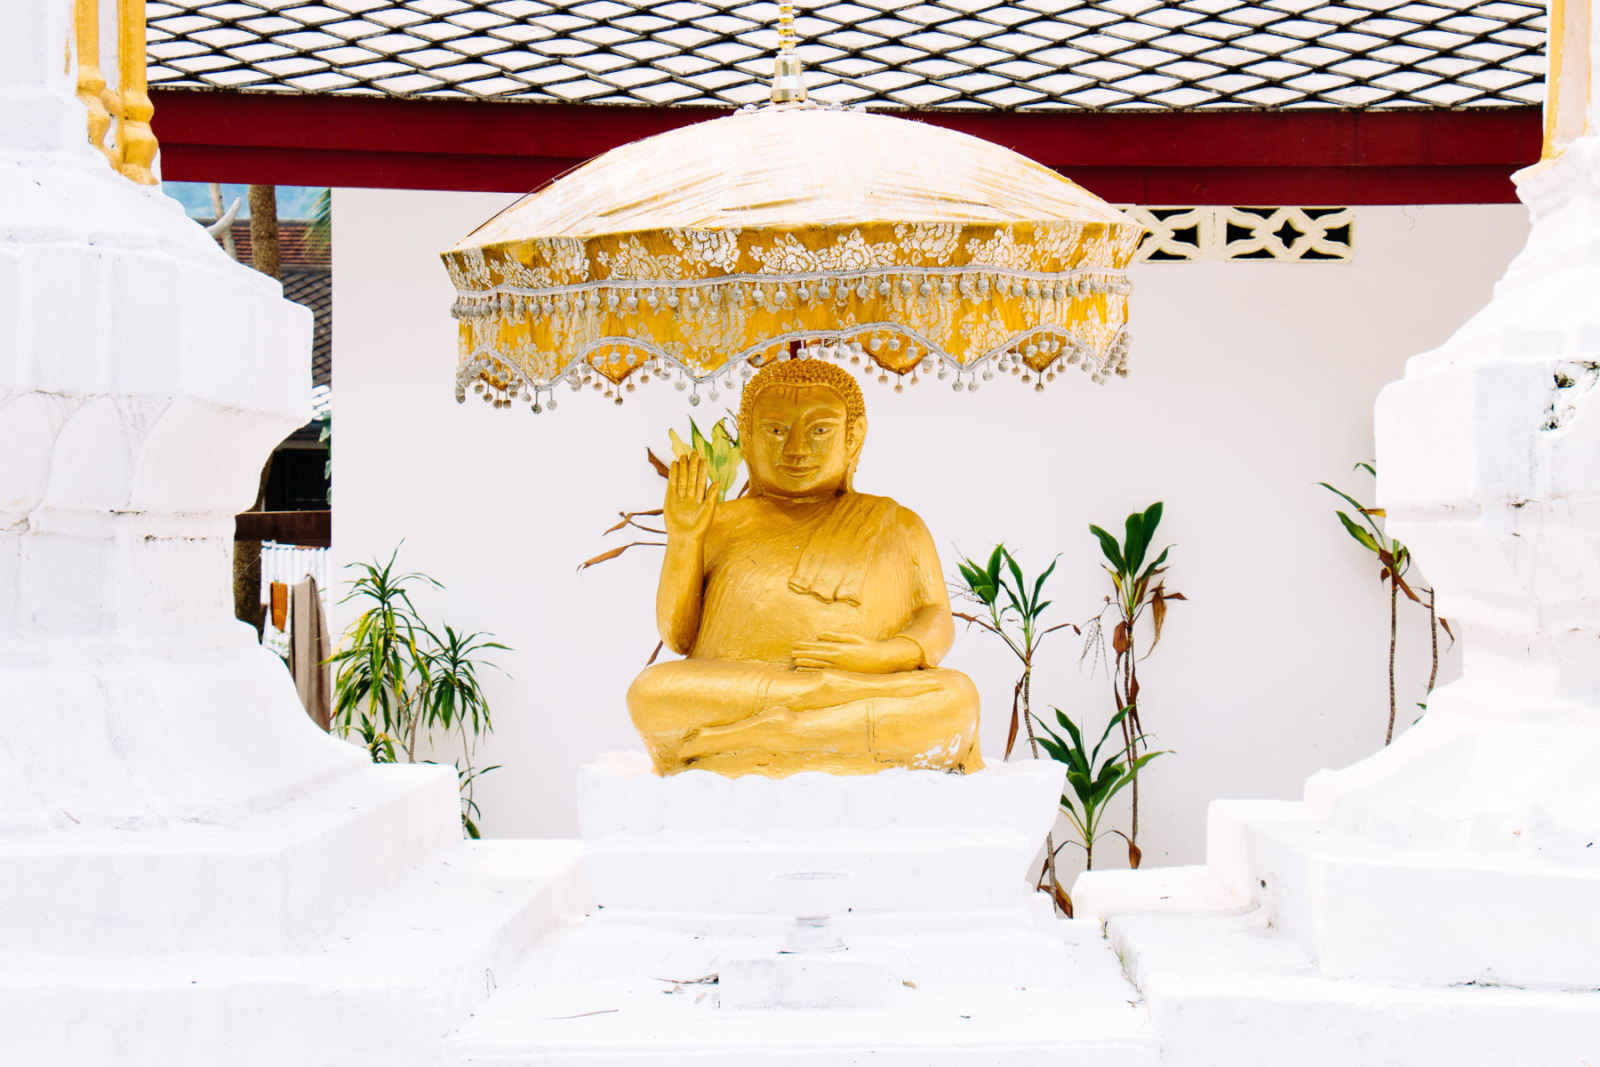 Golden buddha under umbrella in temple in Luang Prabang, Lao